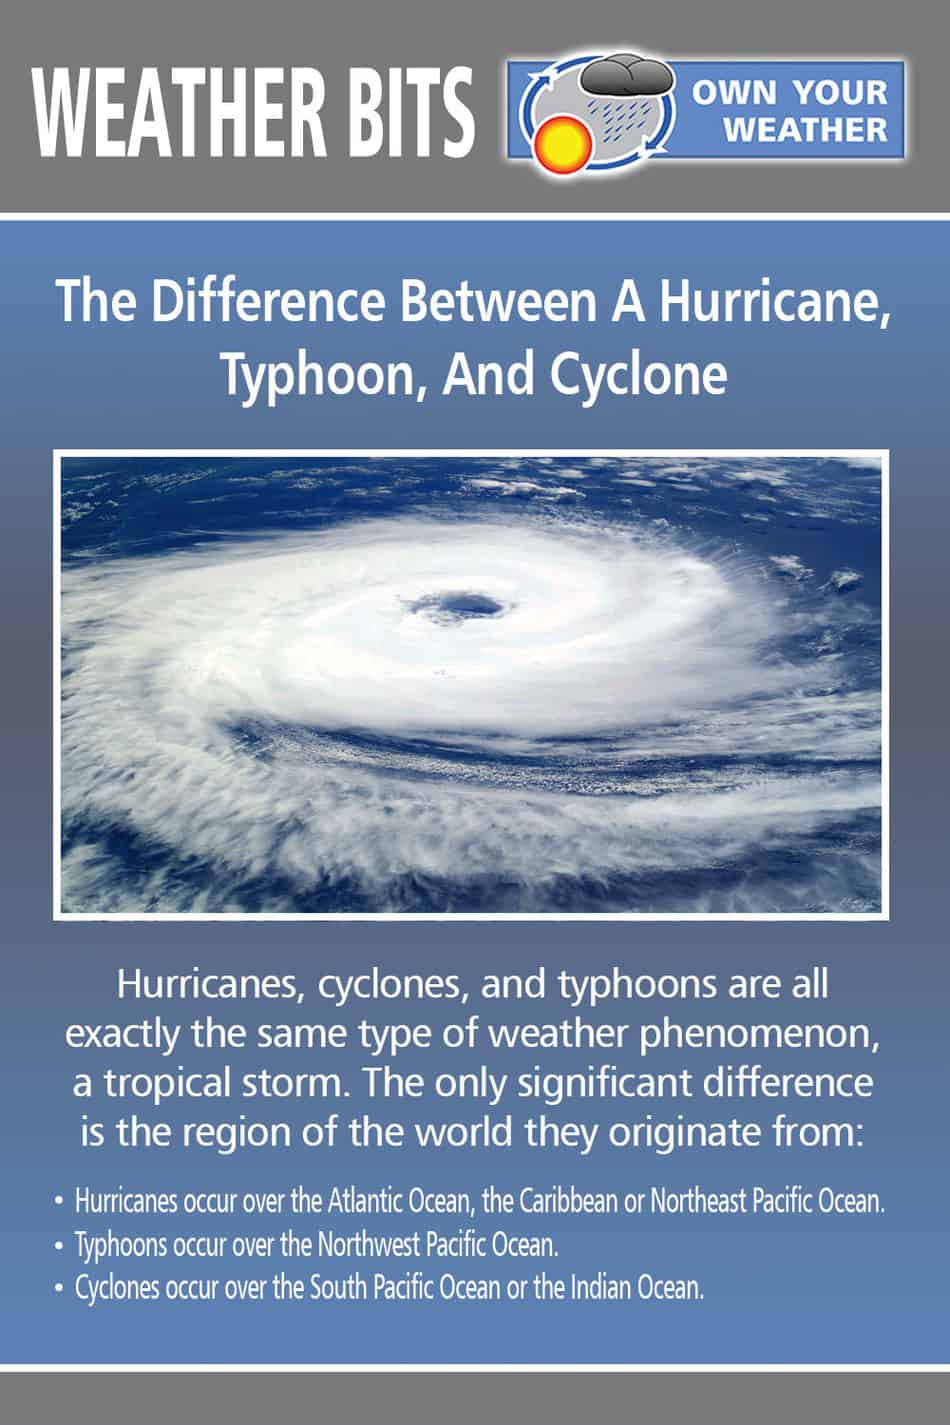 The Difference Between A Hurricane, Typhoon, And Cyclone